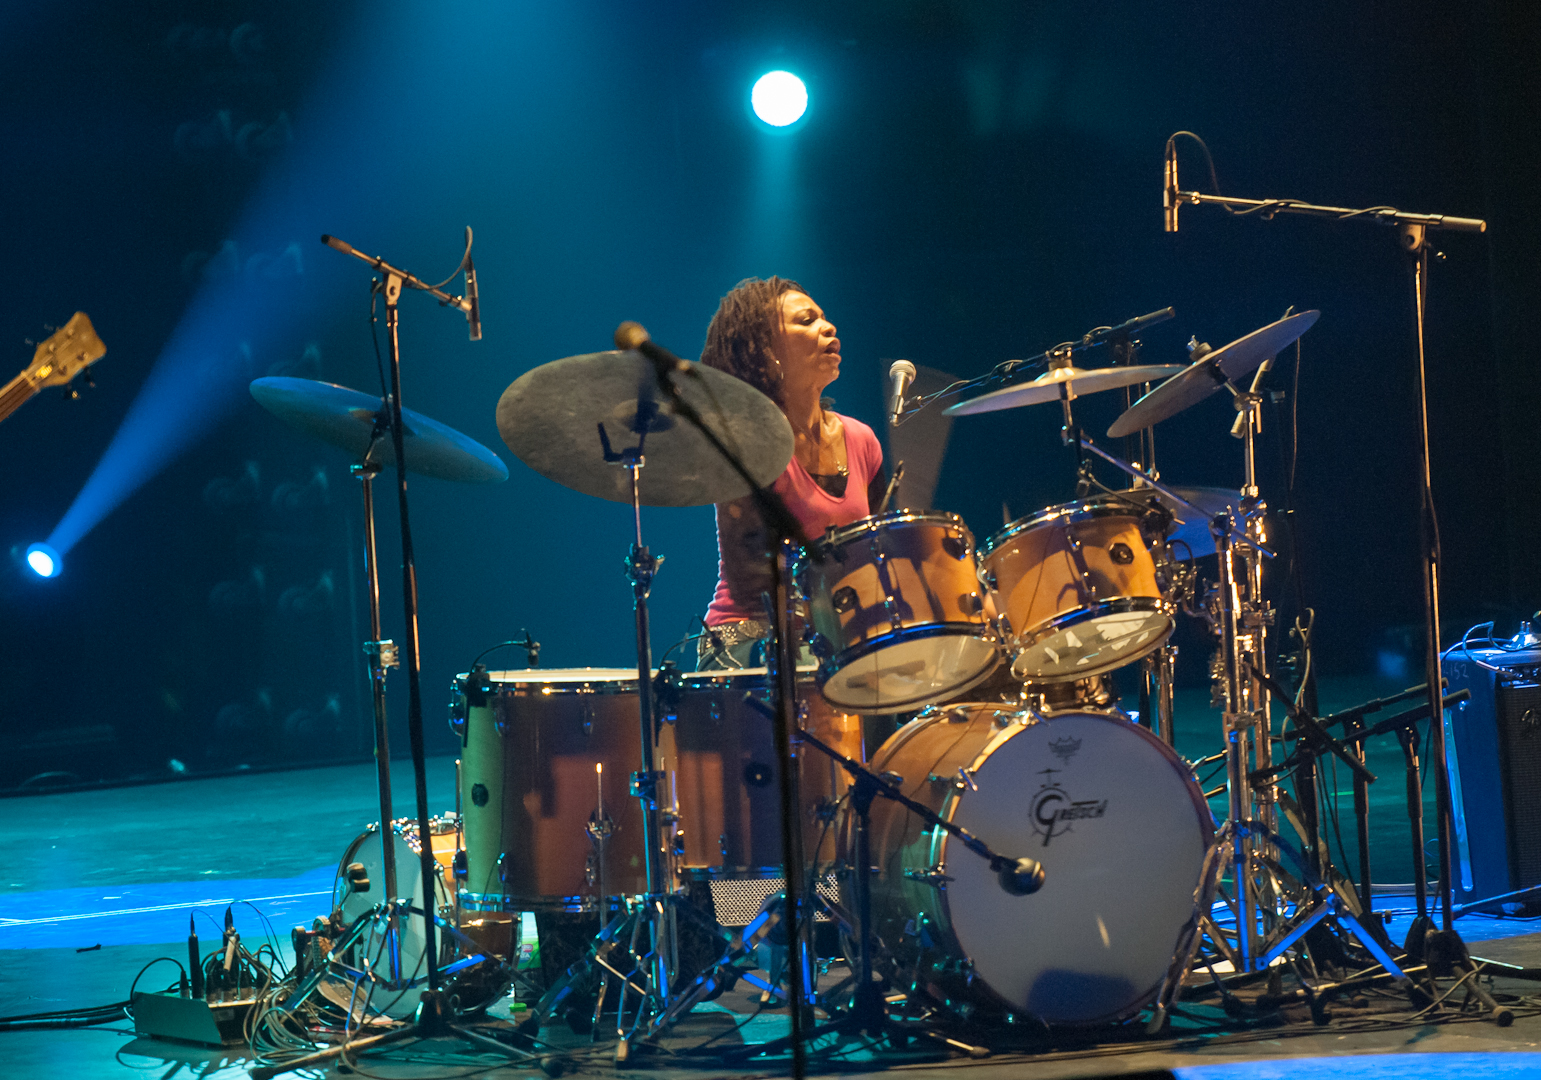 Cindy Blackman with Spectrum Road at Montreal Jazz Festival 2012